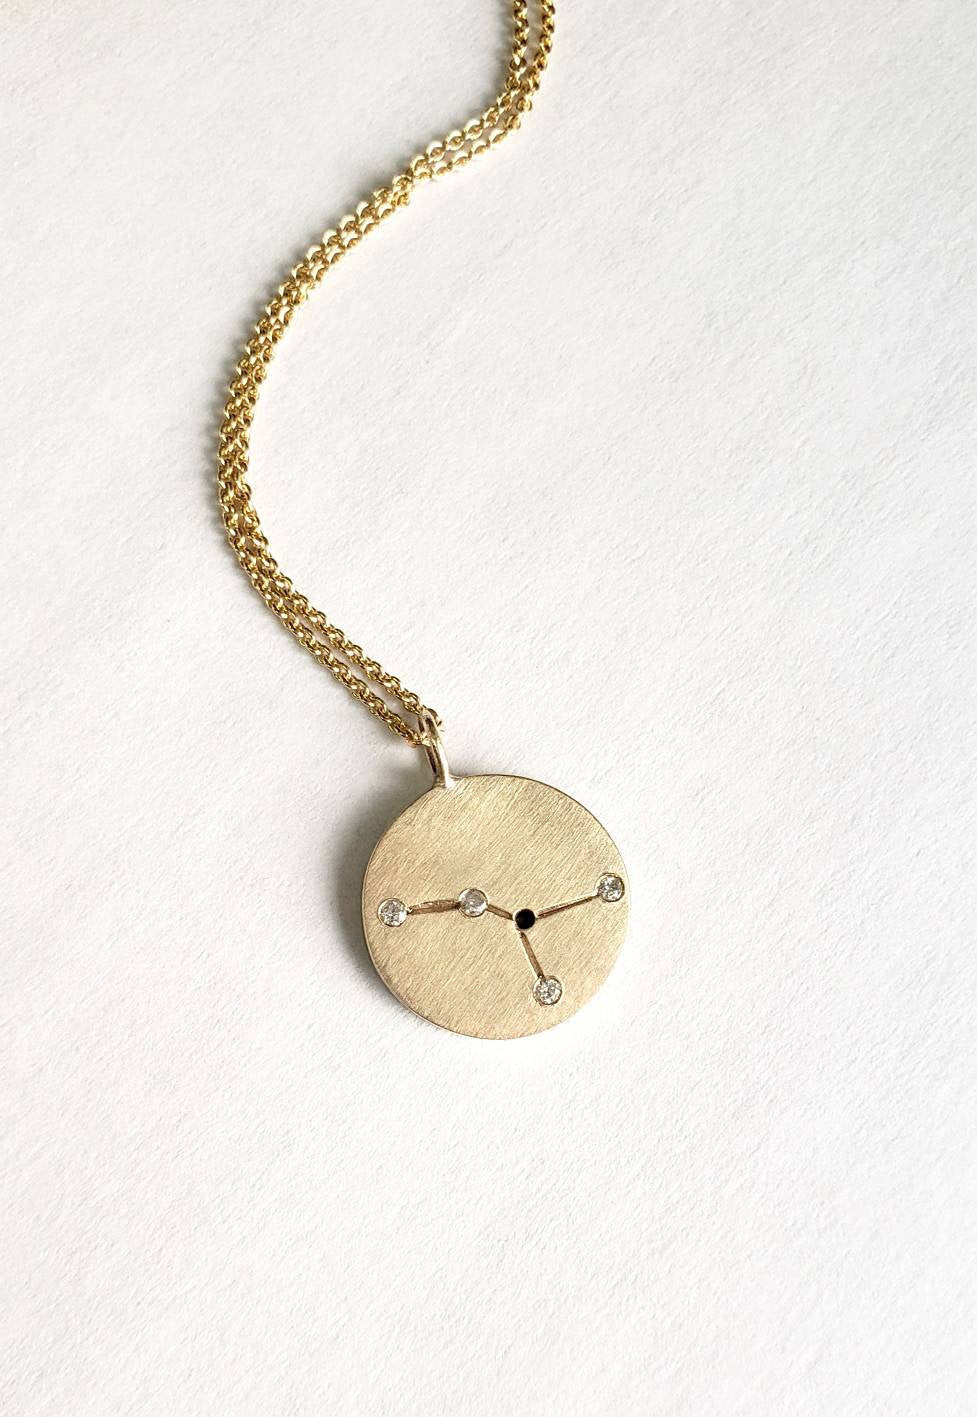 Constellation necklace in solid gold with diamond accents